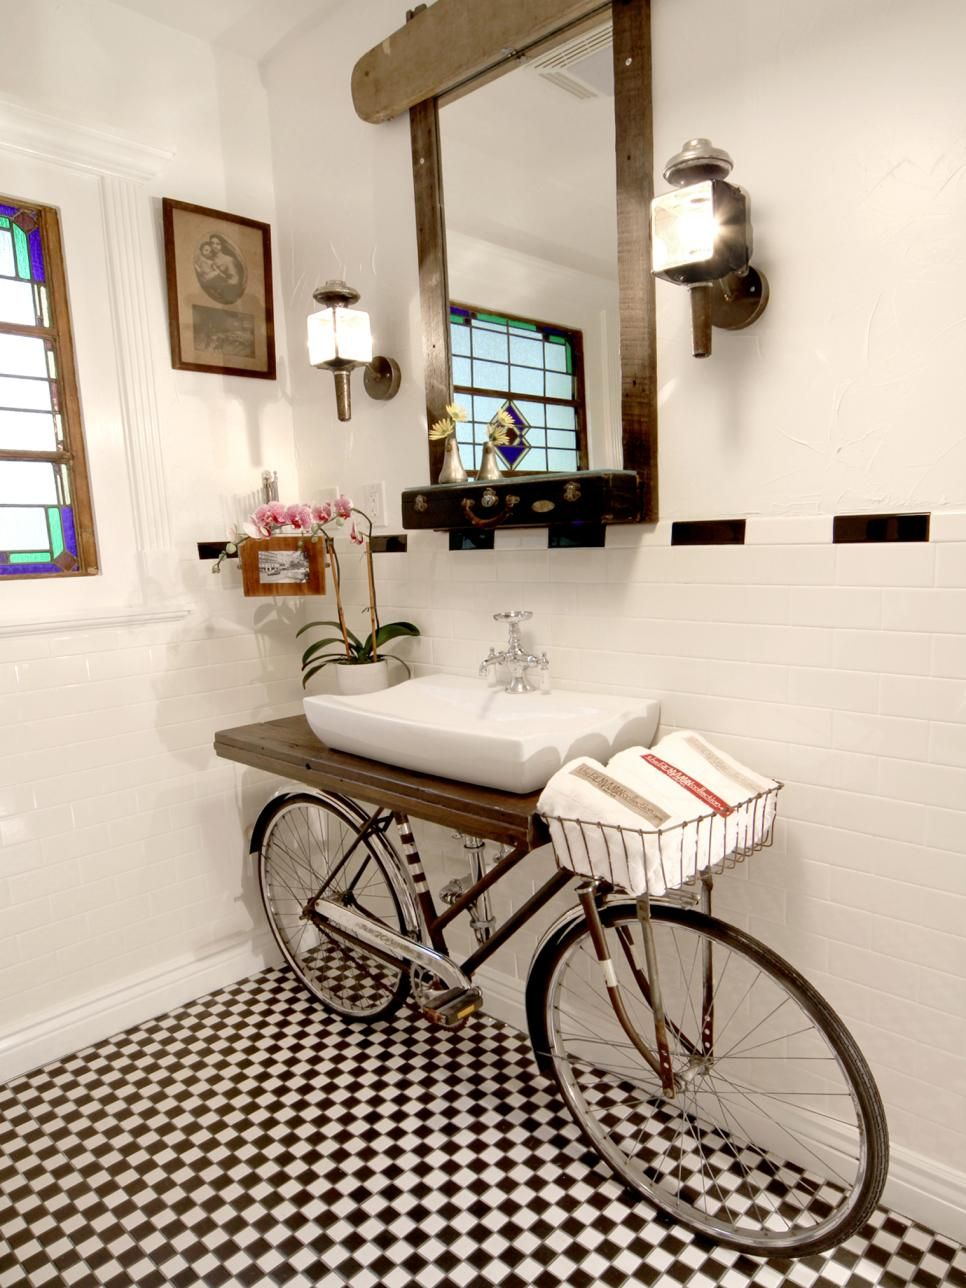 9 Upcycled and One-of-a-Kind Bathroom Vanities | DIY Home Decor ...